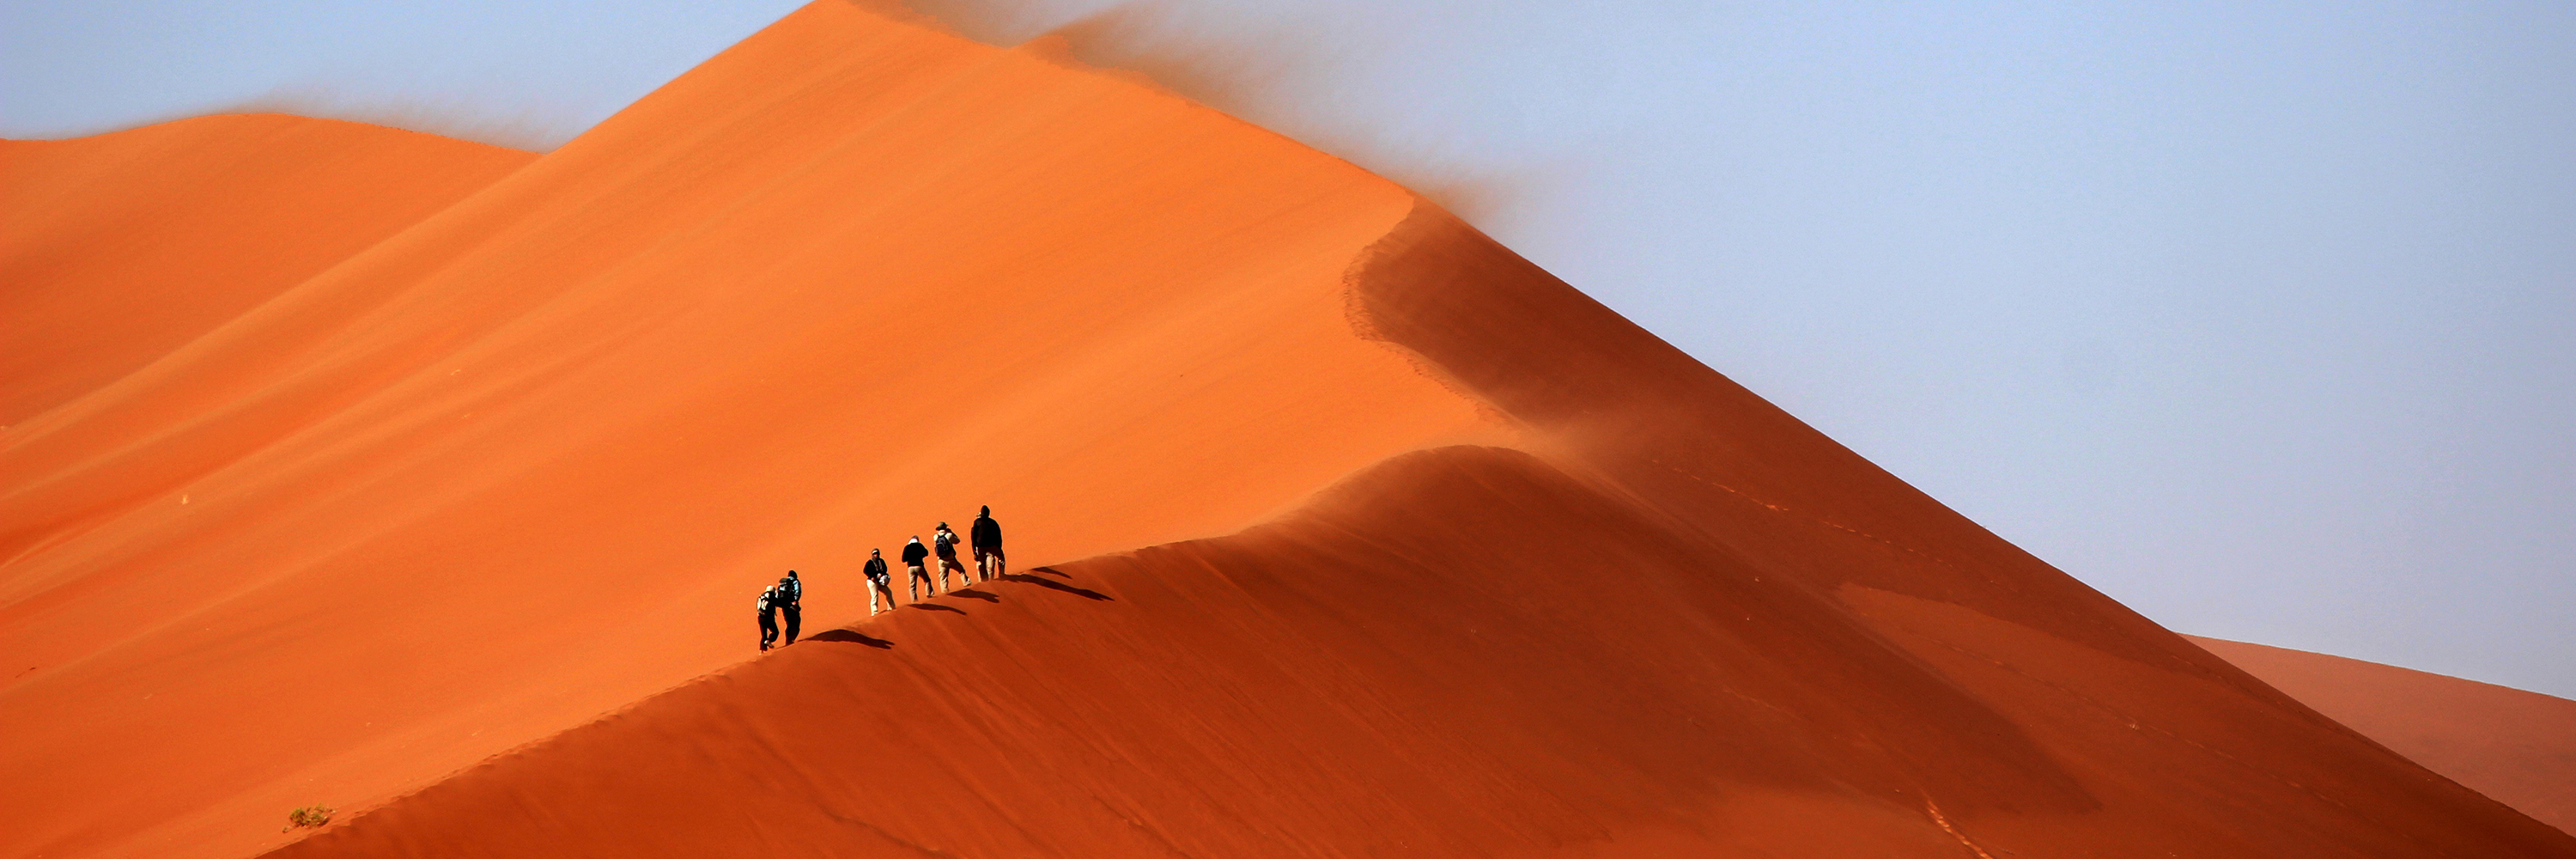 hiking a red sand dune - namibia destinations